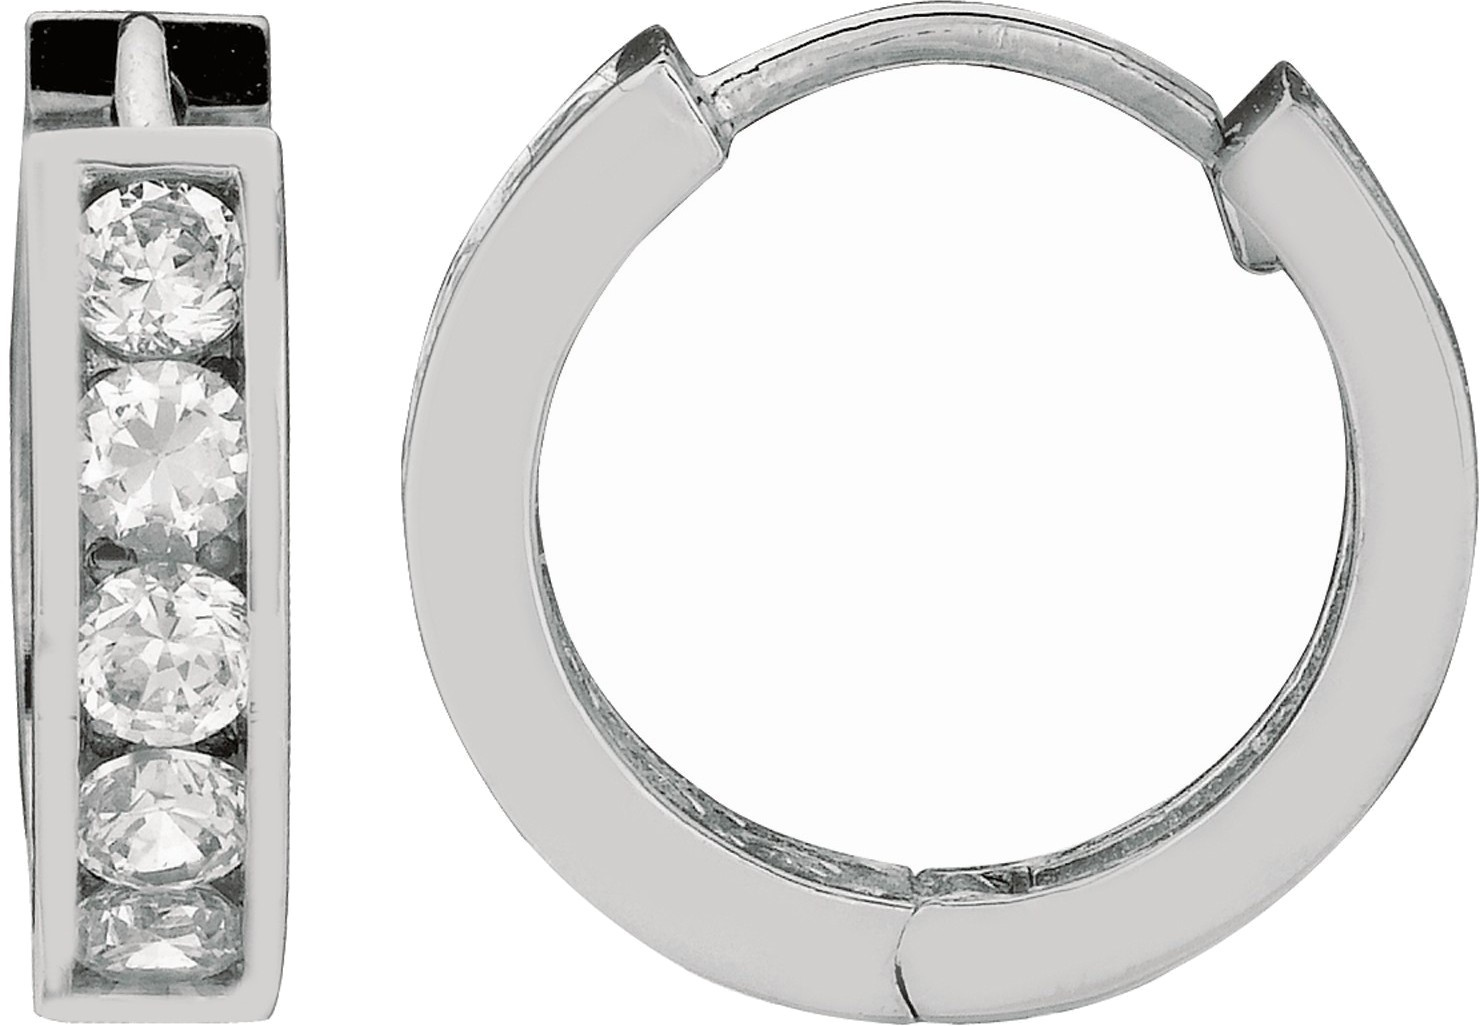 "Silver Rhodium Plated Shiny 4.0x13mm (0.16""x0.51"") Clear Cubic Zirconia (CZ) Huggie Hoop Earrings (BTAGE418)"